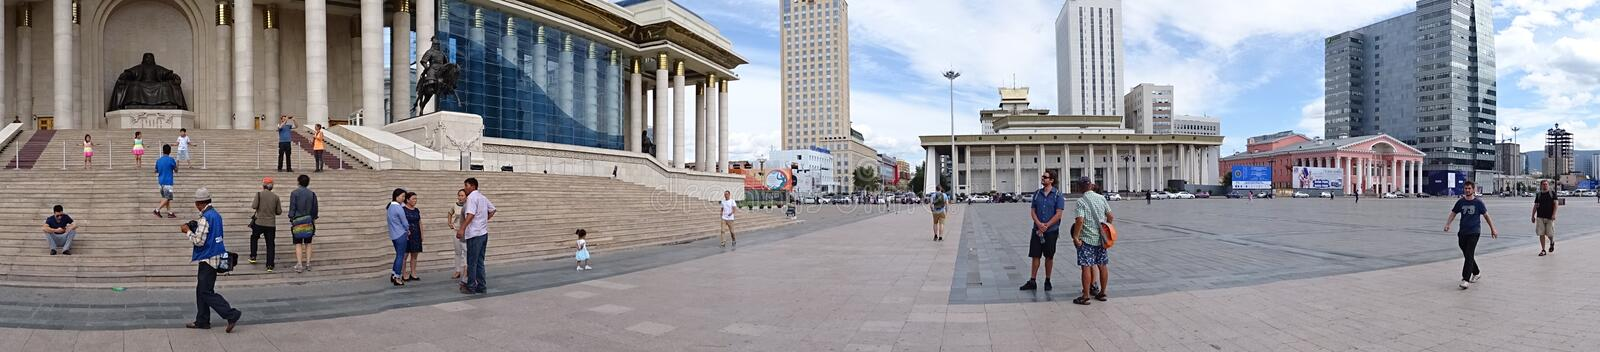 Mongolian central square stock photography